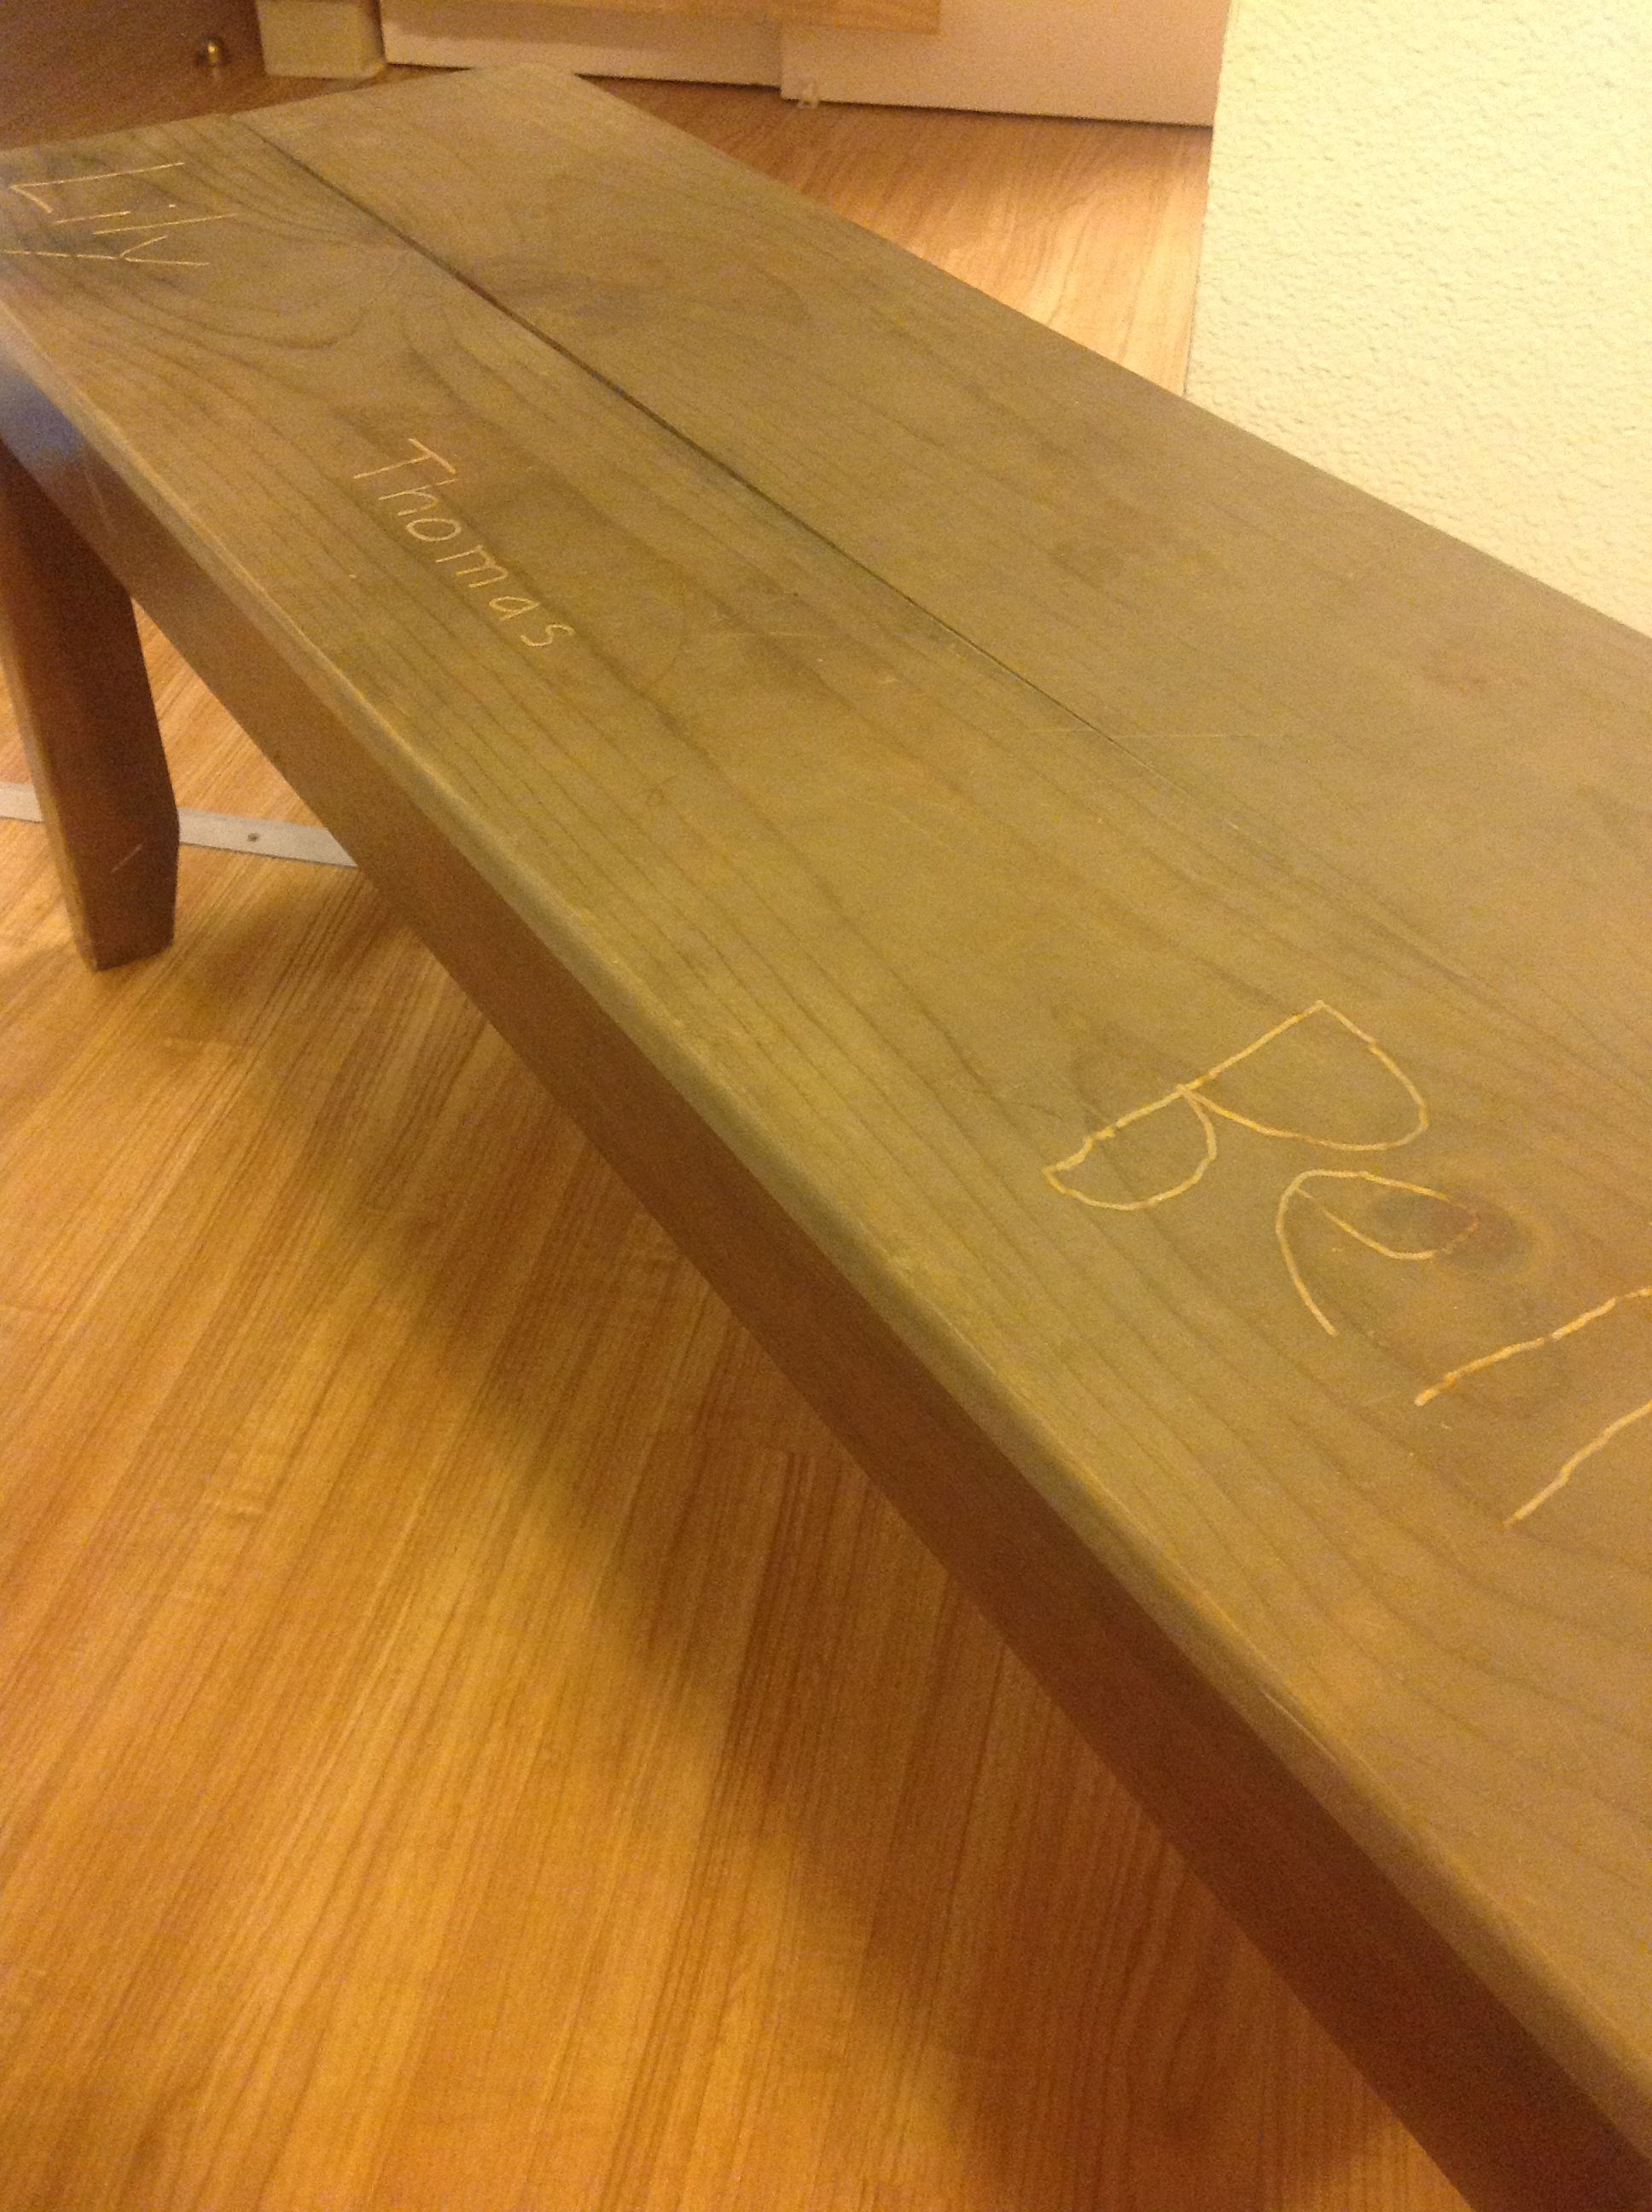 Instead Of Reupholstering Our Dining Room Bench We Fitted It With Two New Planks